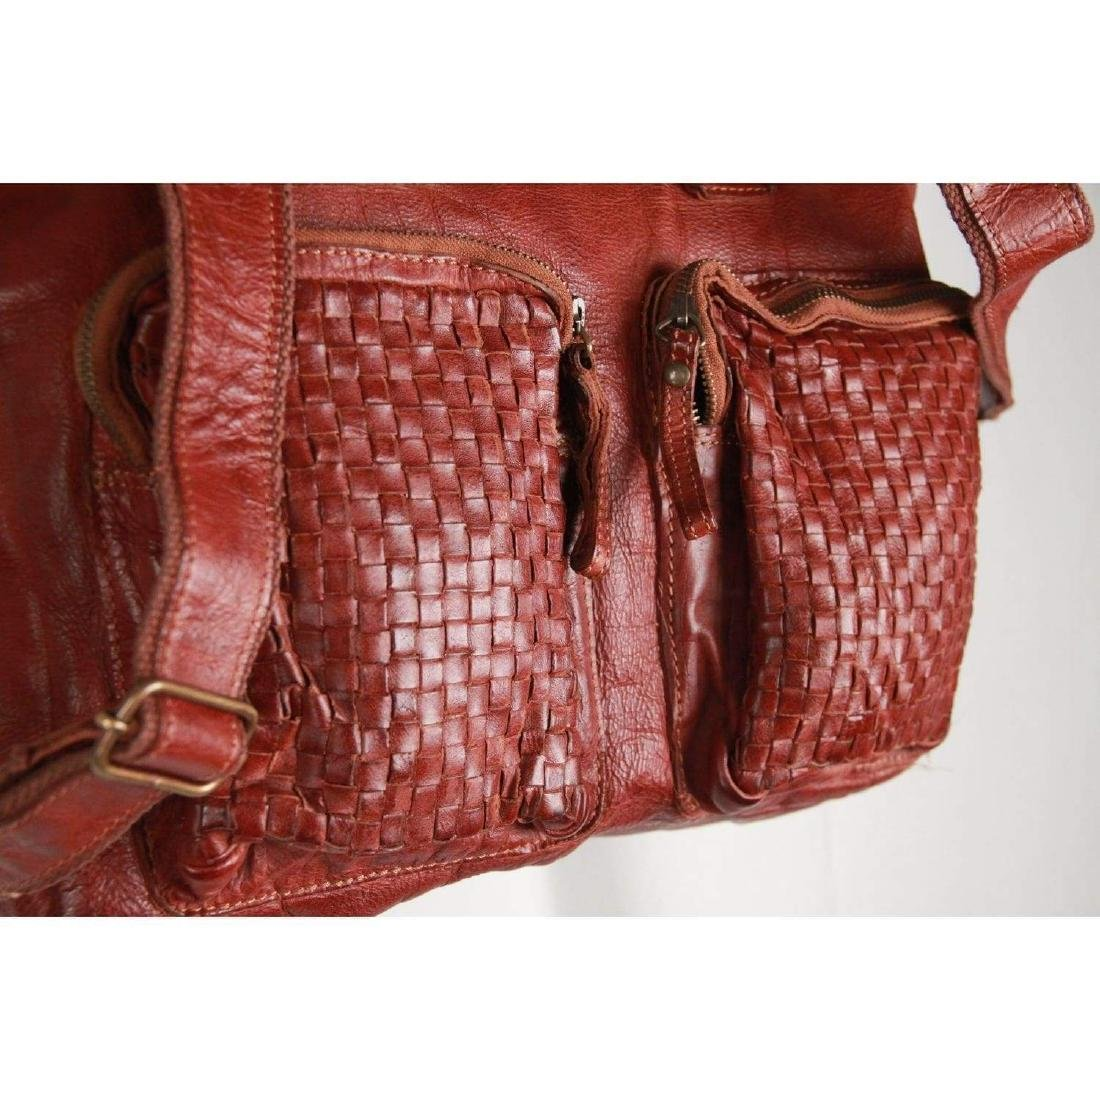 COWBOYSBAG Brown Leather THE BAG Satchel with WOVEN - 5